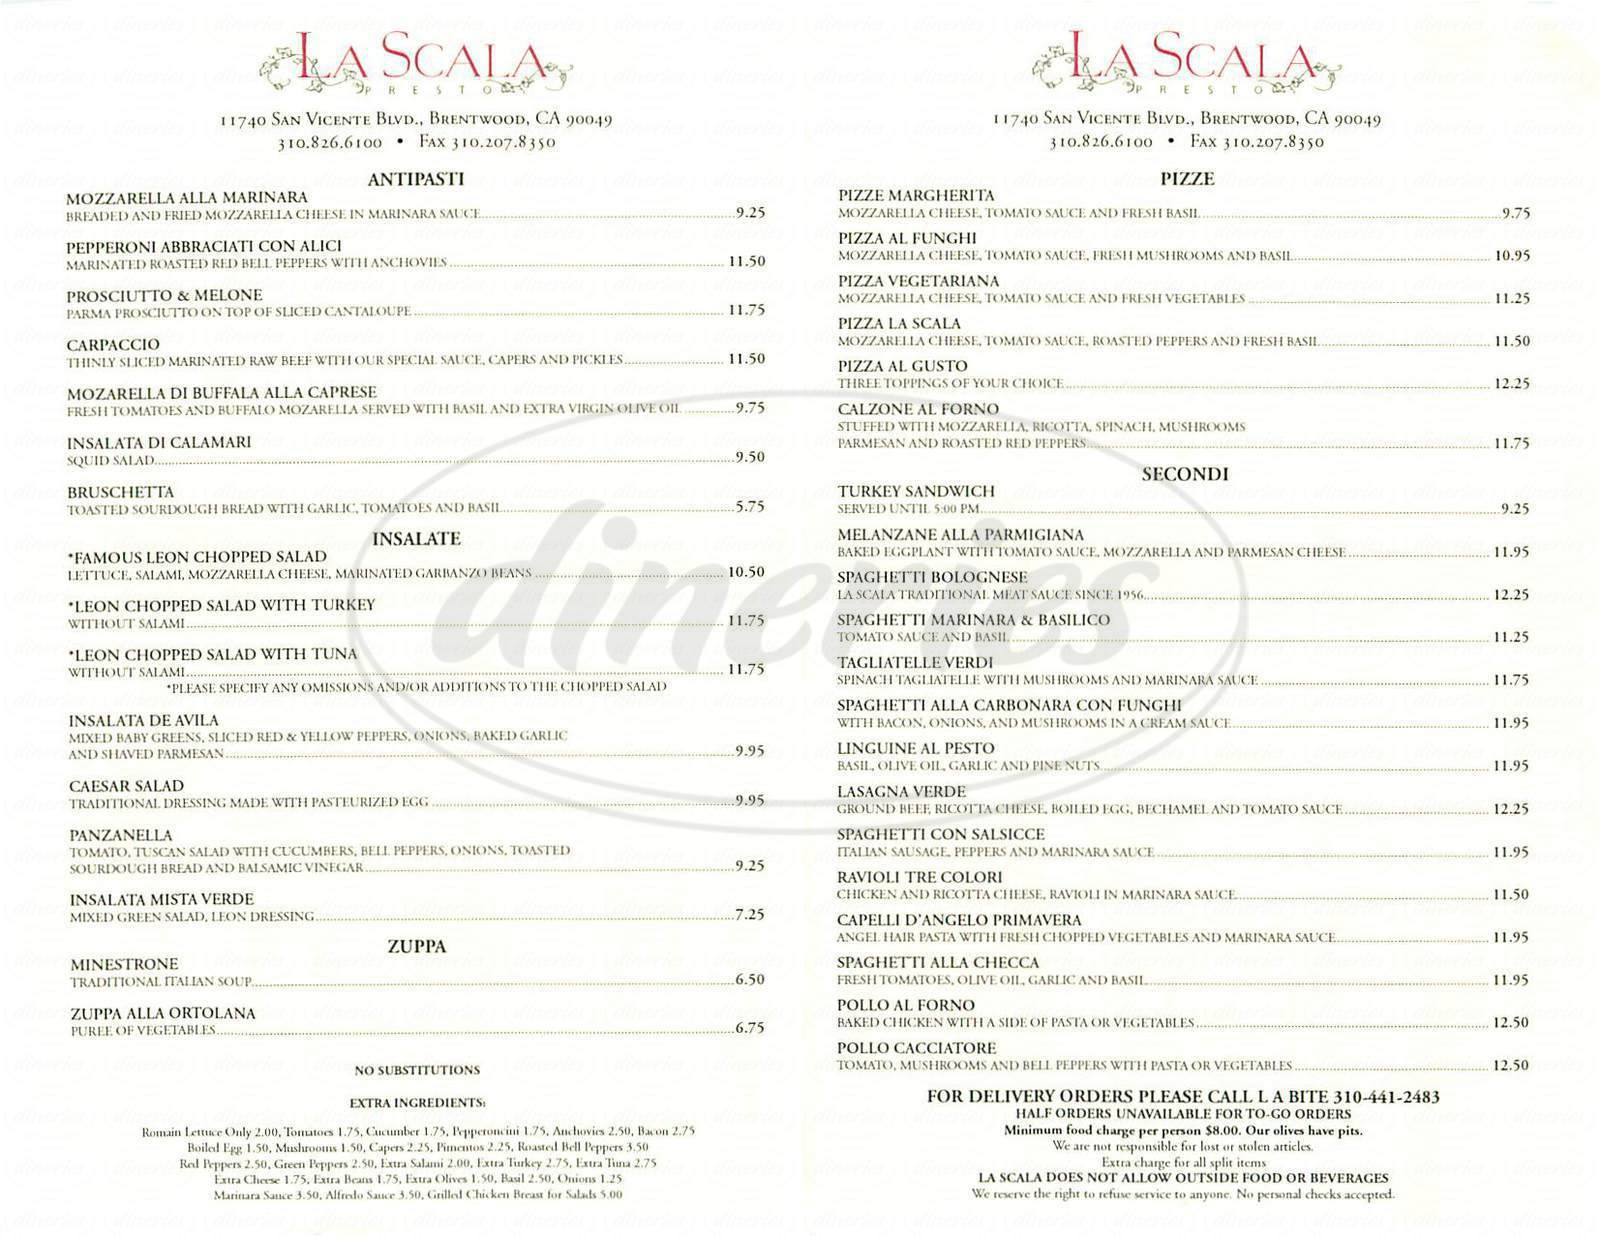 menu for La Scala